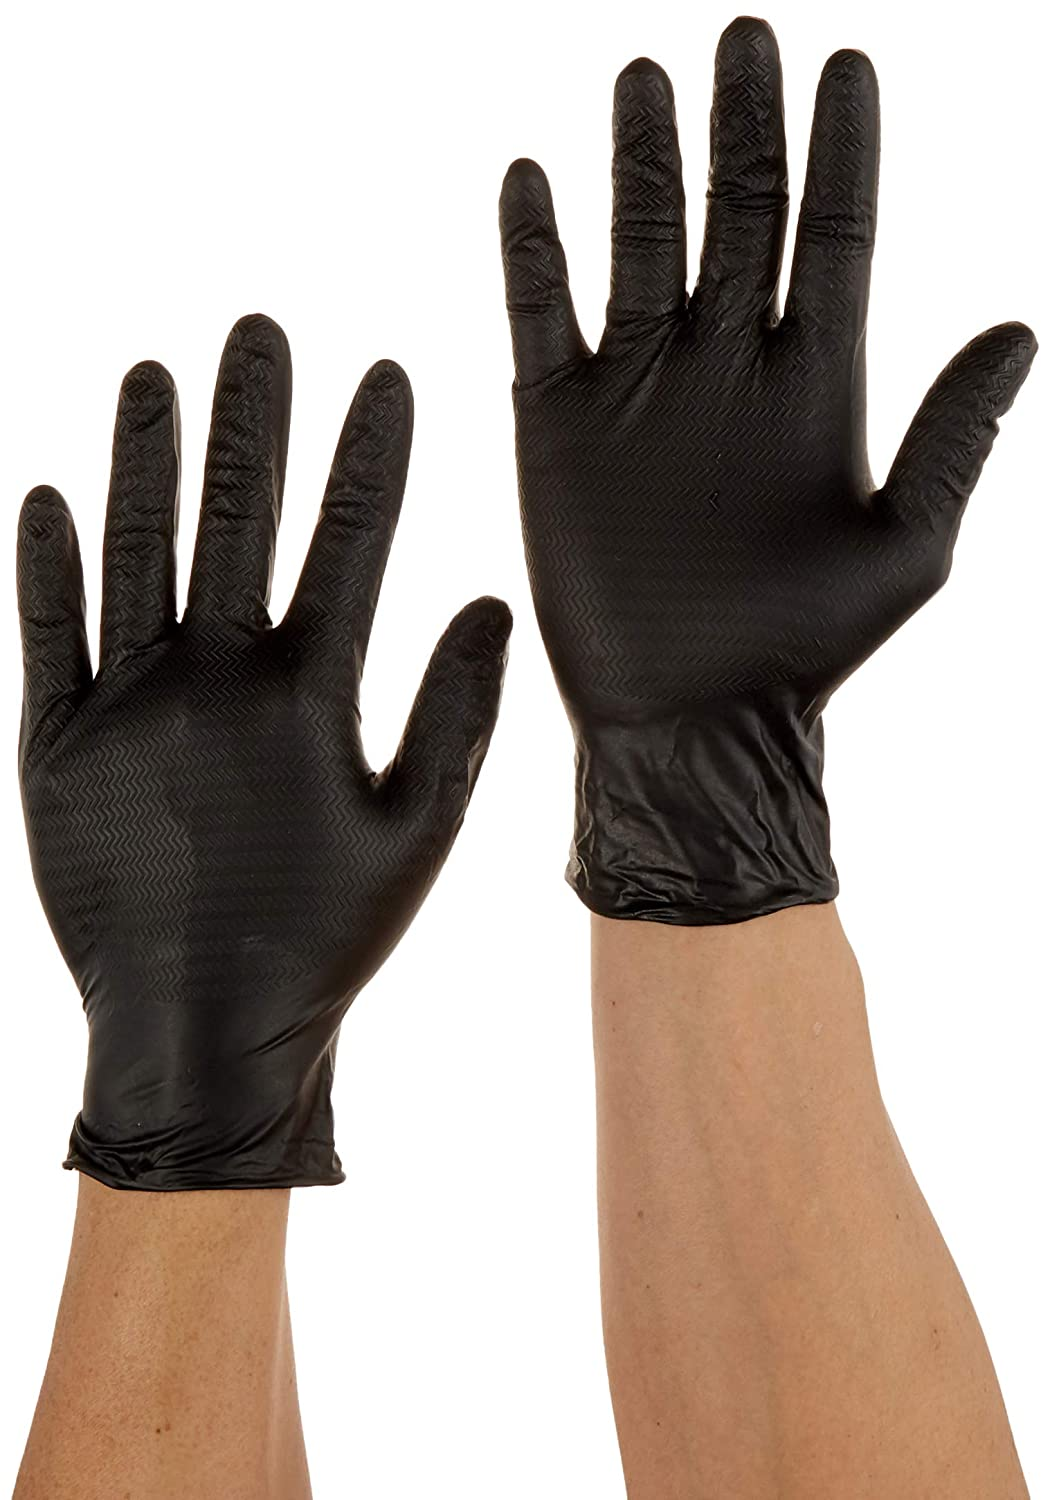 Tyre-Tread Textured Size M 1000 7 mil Black 10 Boxes of 100 240mm Commercial Powder Free Disposable Nitrile Gloves